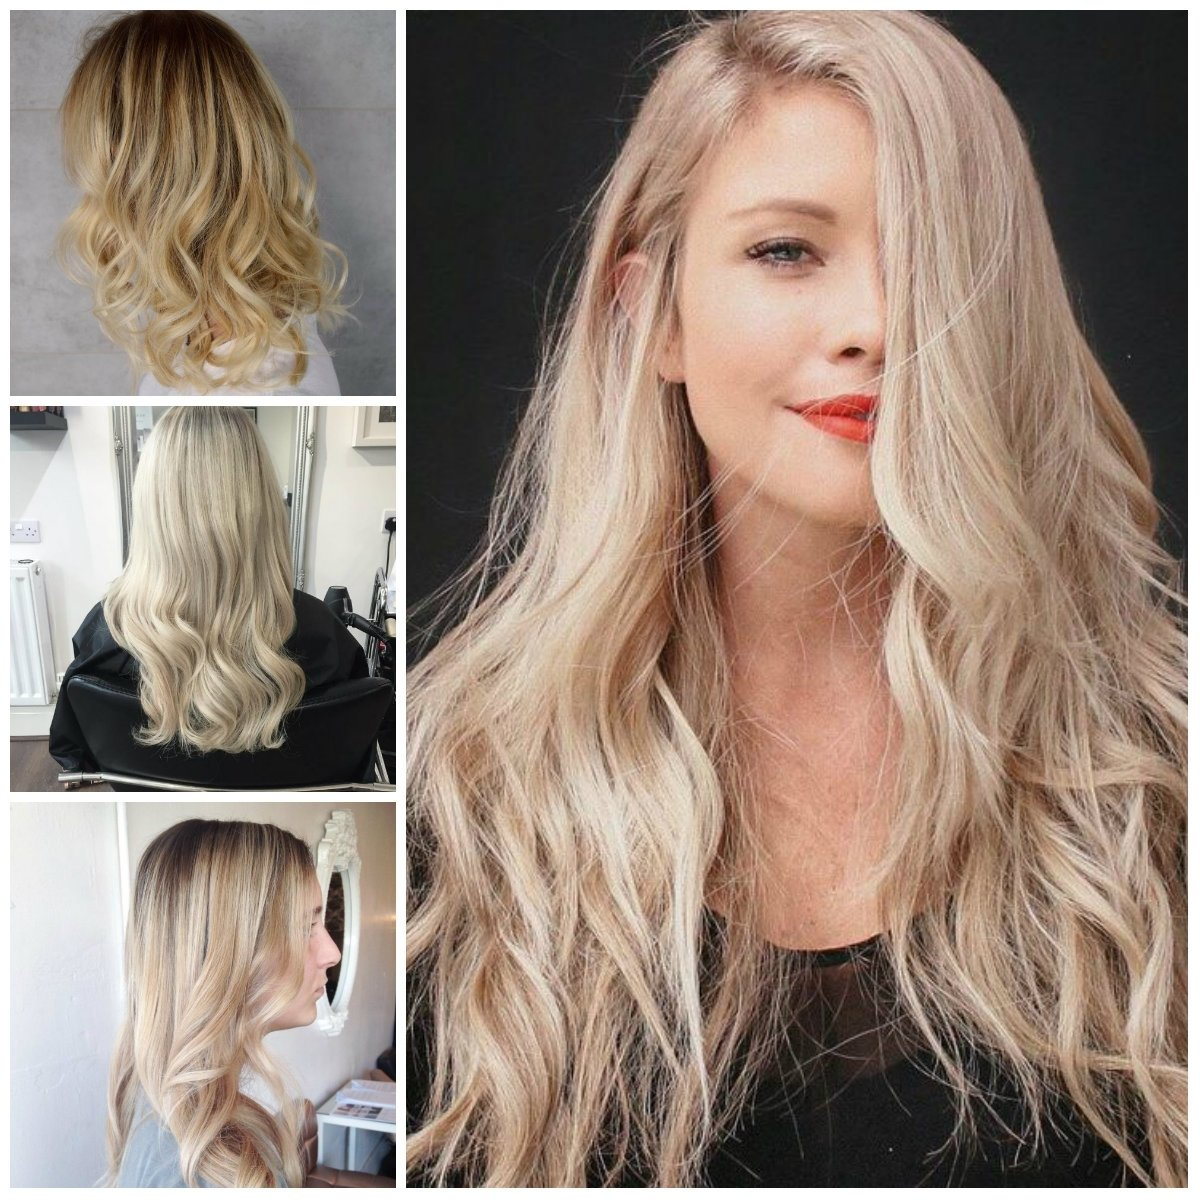 10 Unique Blonde And Dark Brown Hair Color Ideas